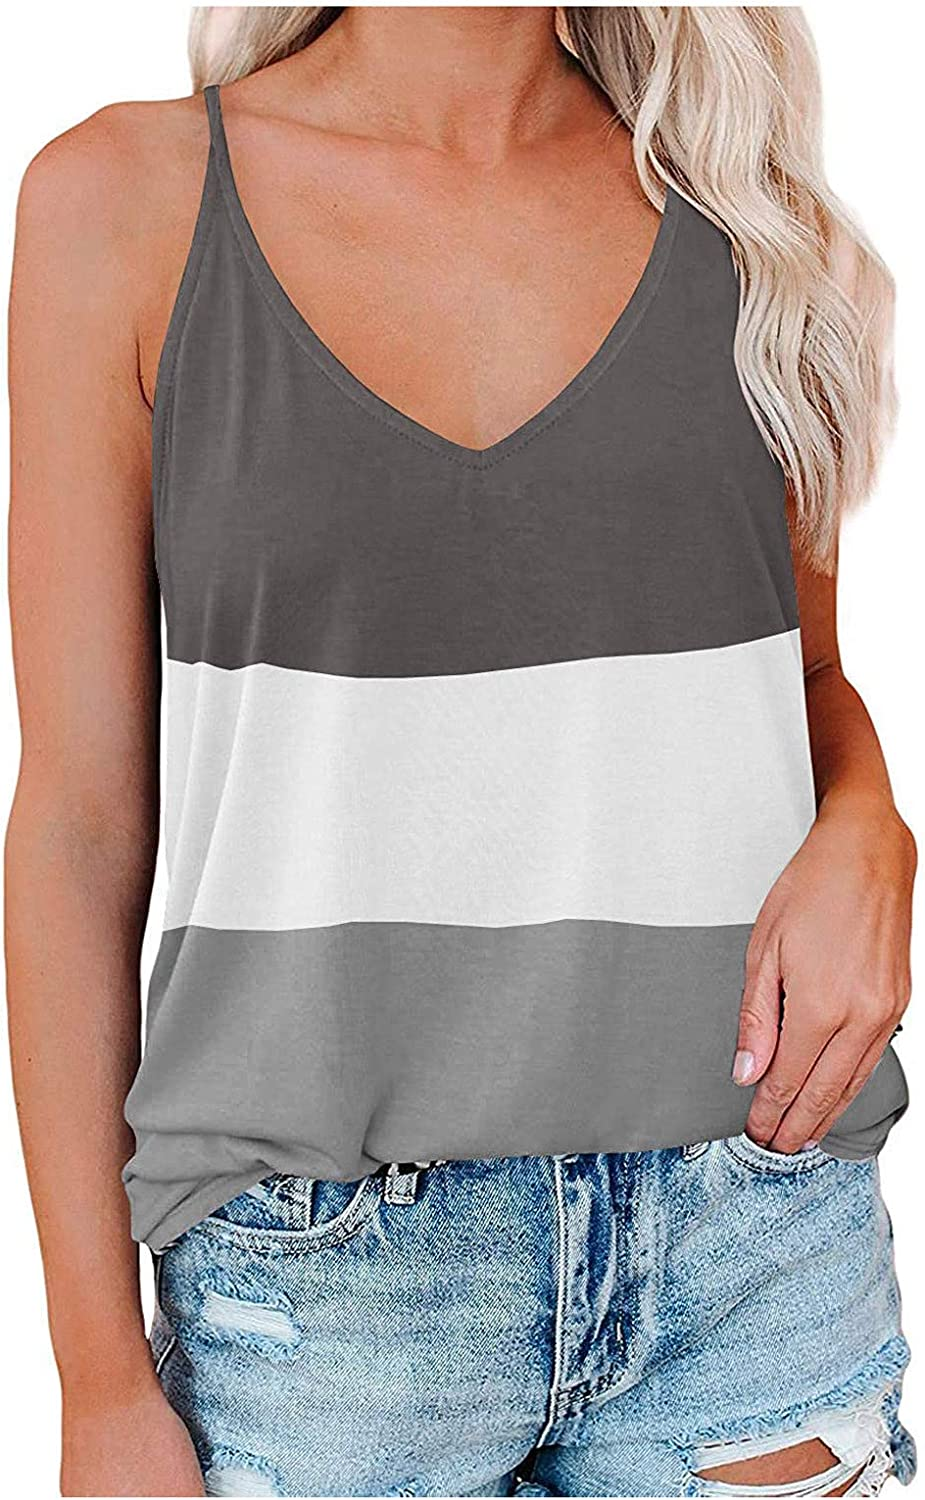 ovticza Womens Summer Tops Women Fashion Patchwork Color Vest Tops V-Neck Sleeveless Camisole Tank Top